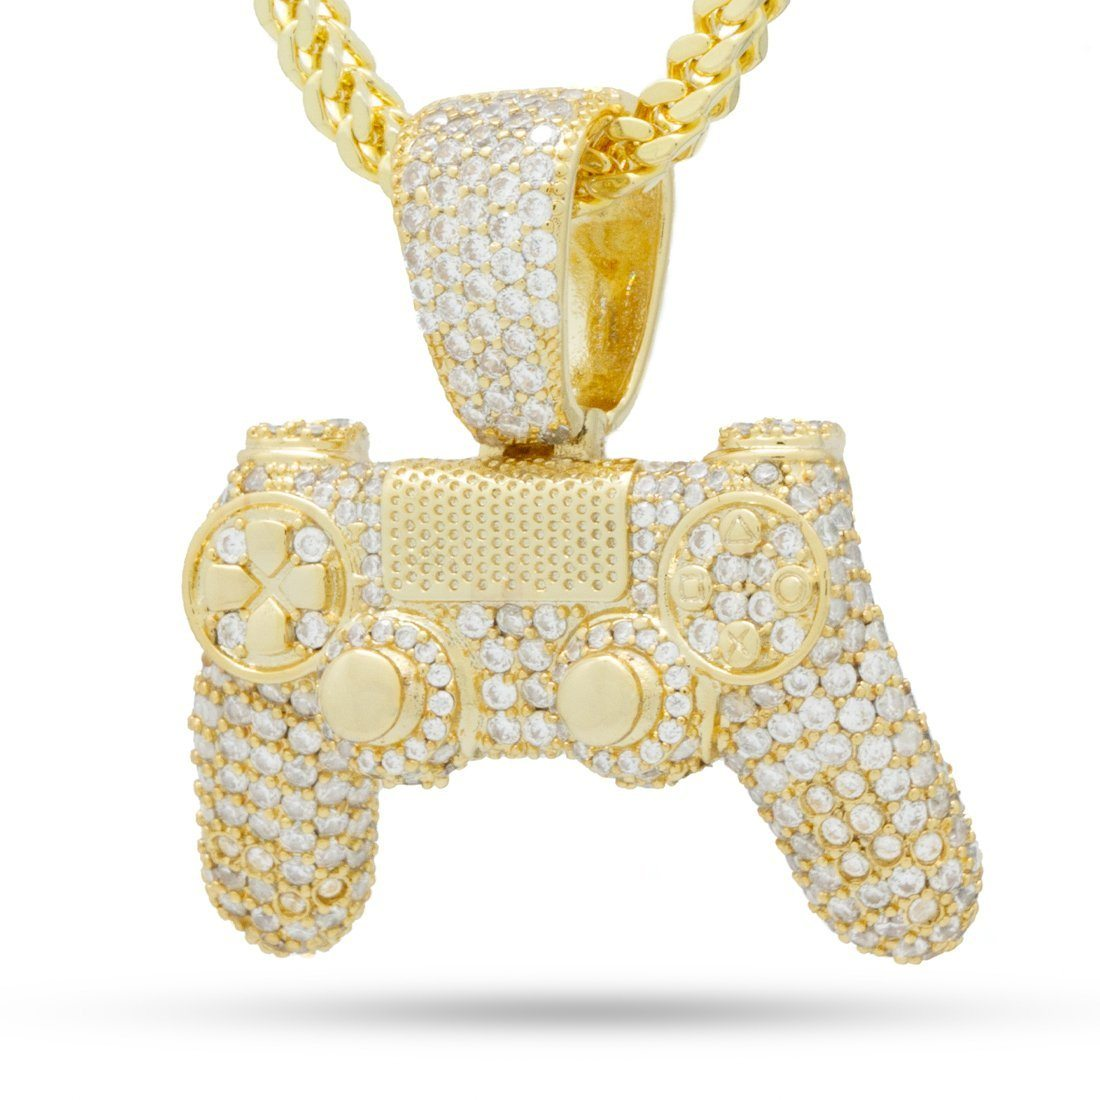 Image of PlayStation by King Ice - The Iced Out Gold Classic Controller Necklace